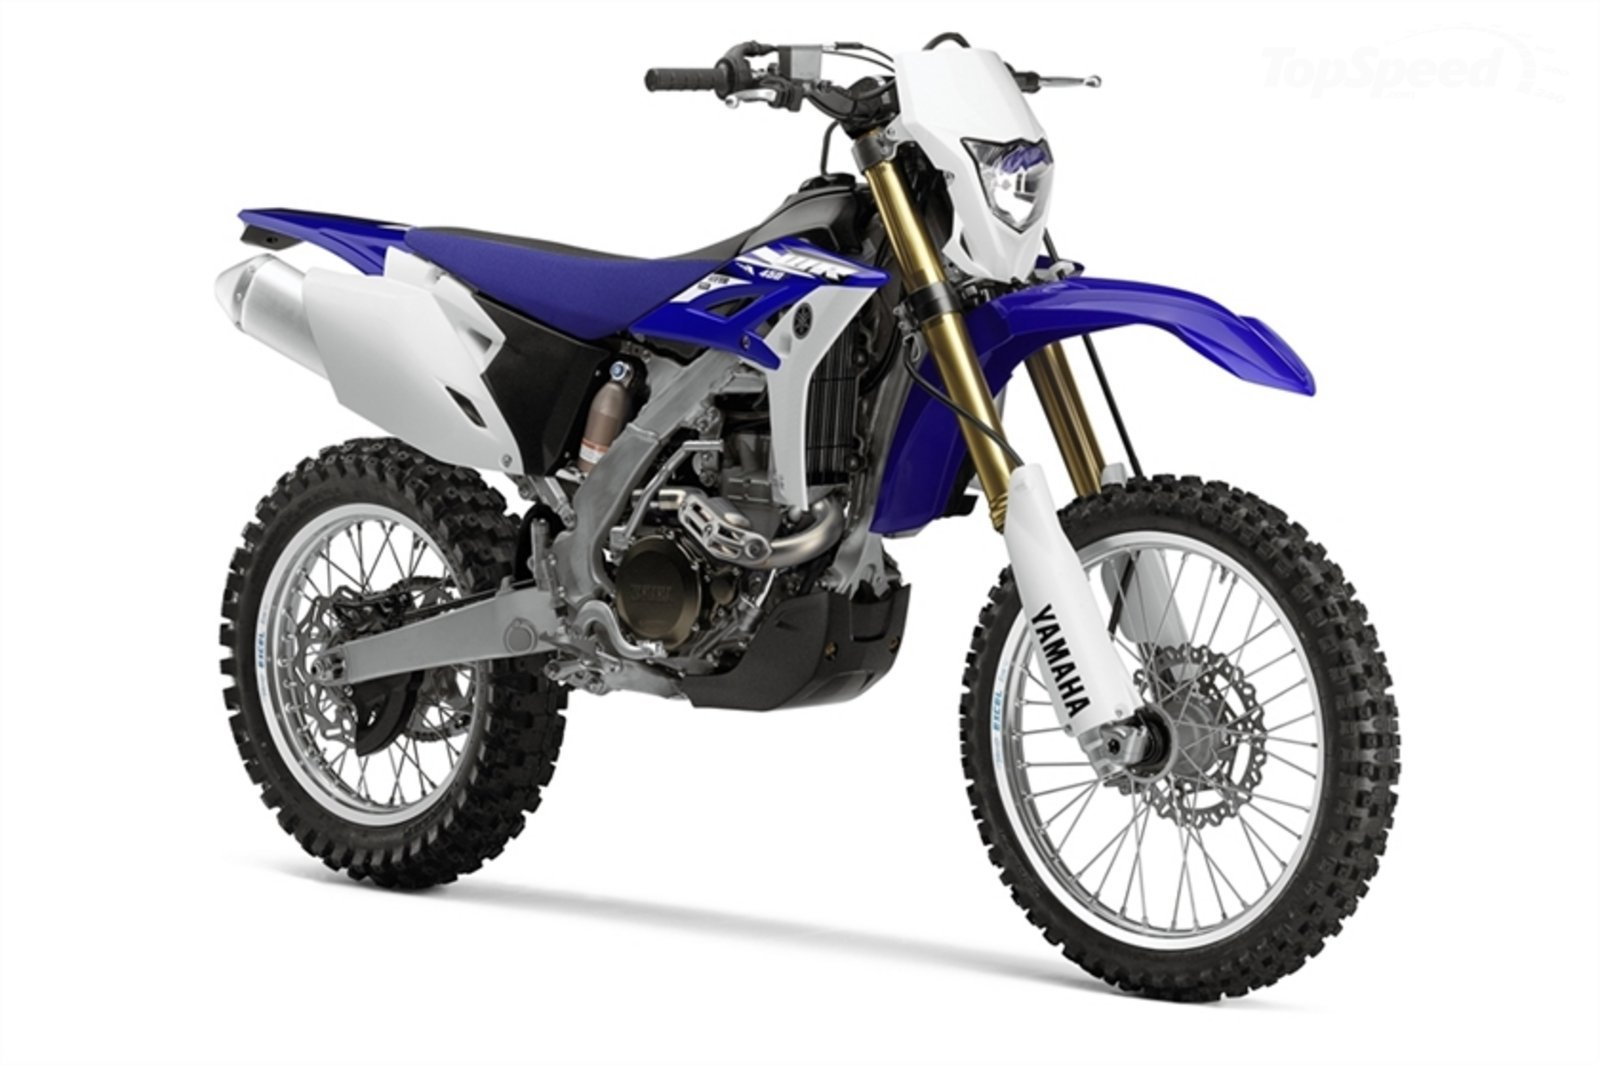 2015 yamaha wr450f review top speed. Black Bedroom Furniture Sets. Home Design Ideas